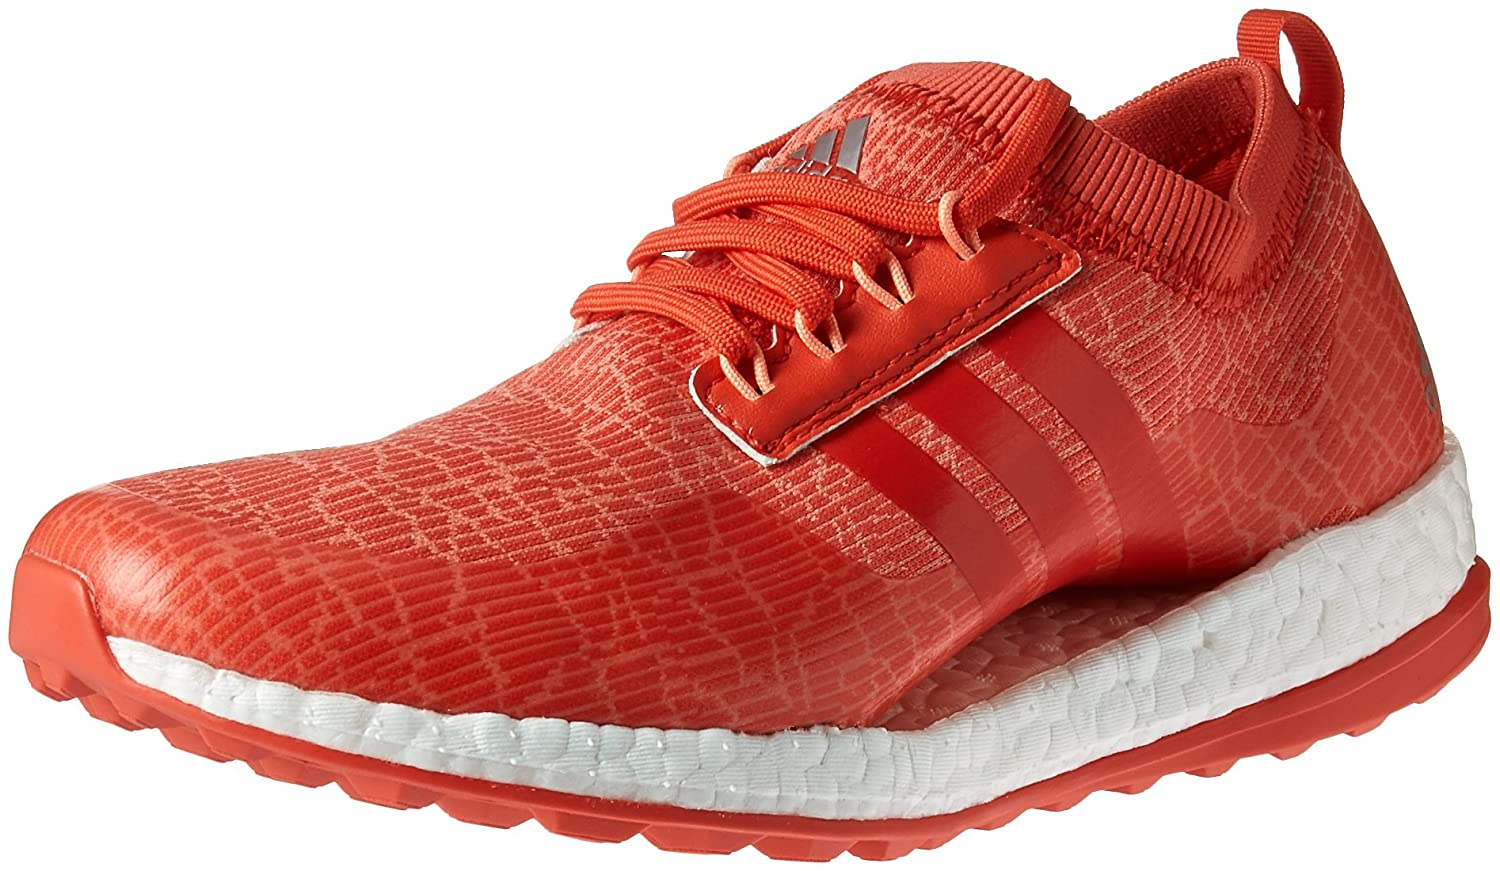 Chalkcoral S18   Real Coral S18   Real Coral S18 adidas Pure Boost XG - Femme Femme 35.5 EU